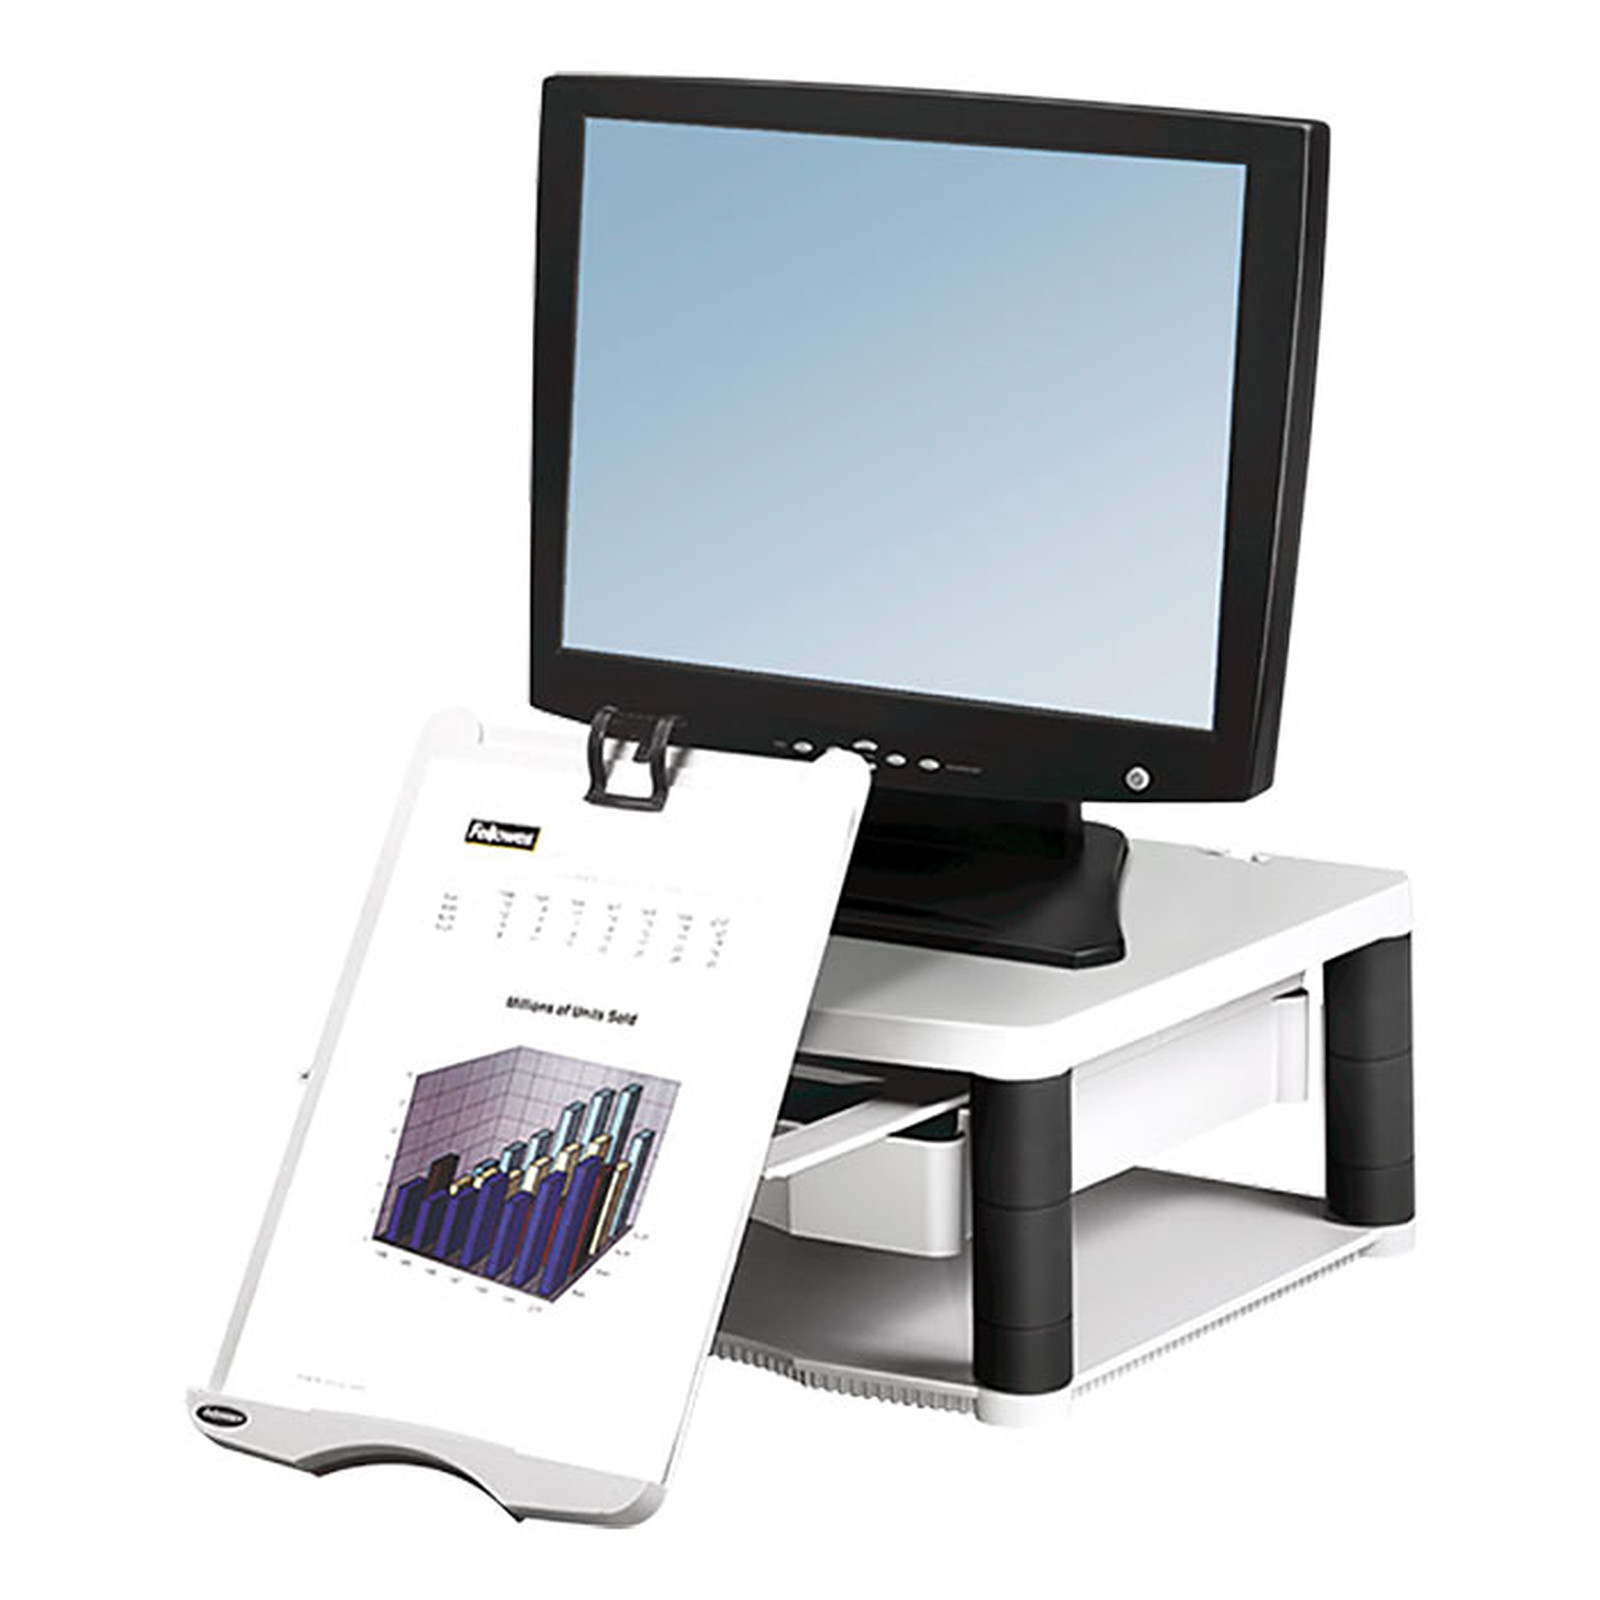 Fellowes Premium Plus Soporte para monitores - Gris